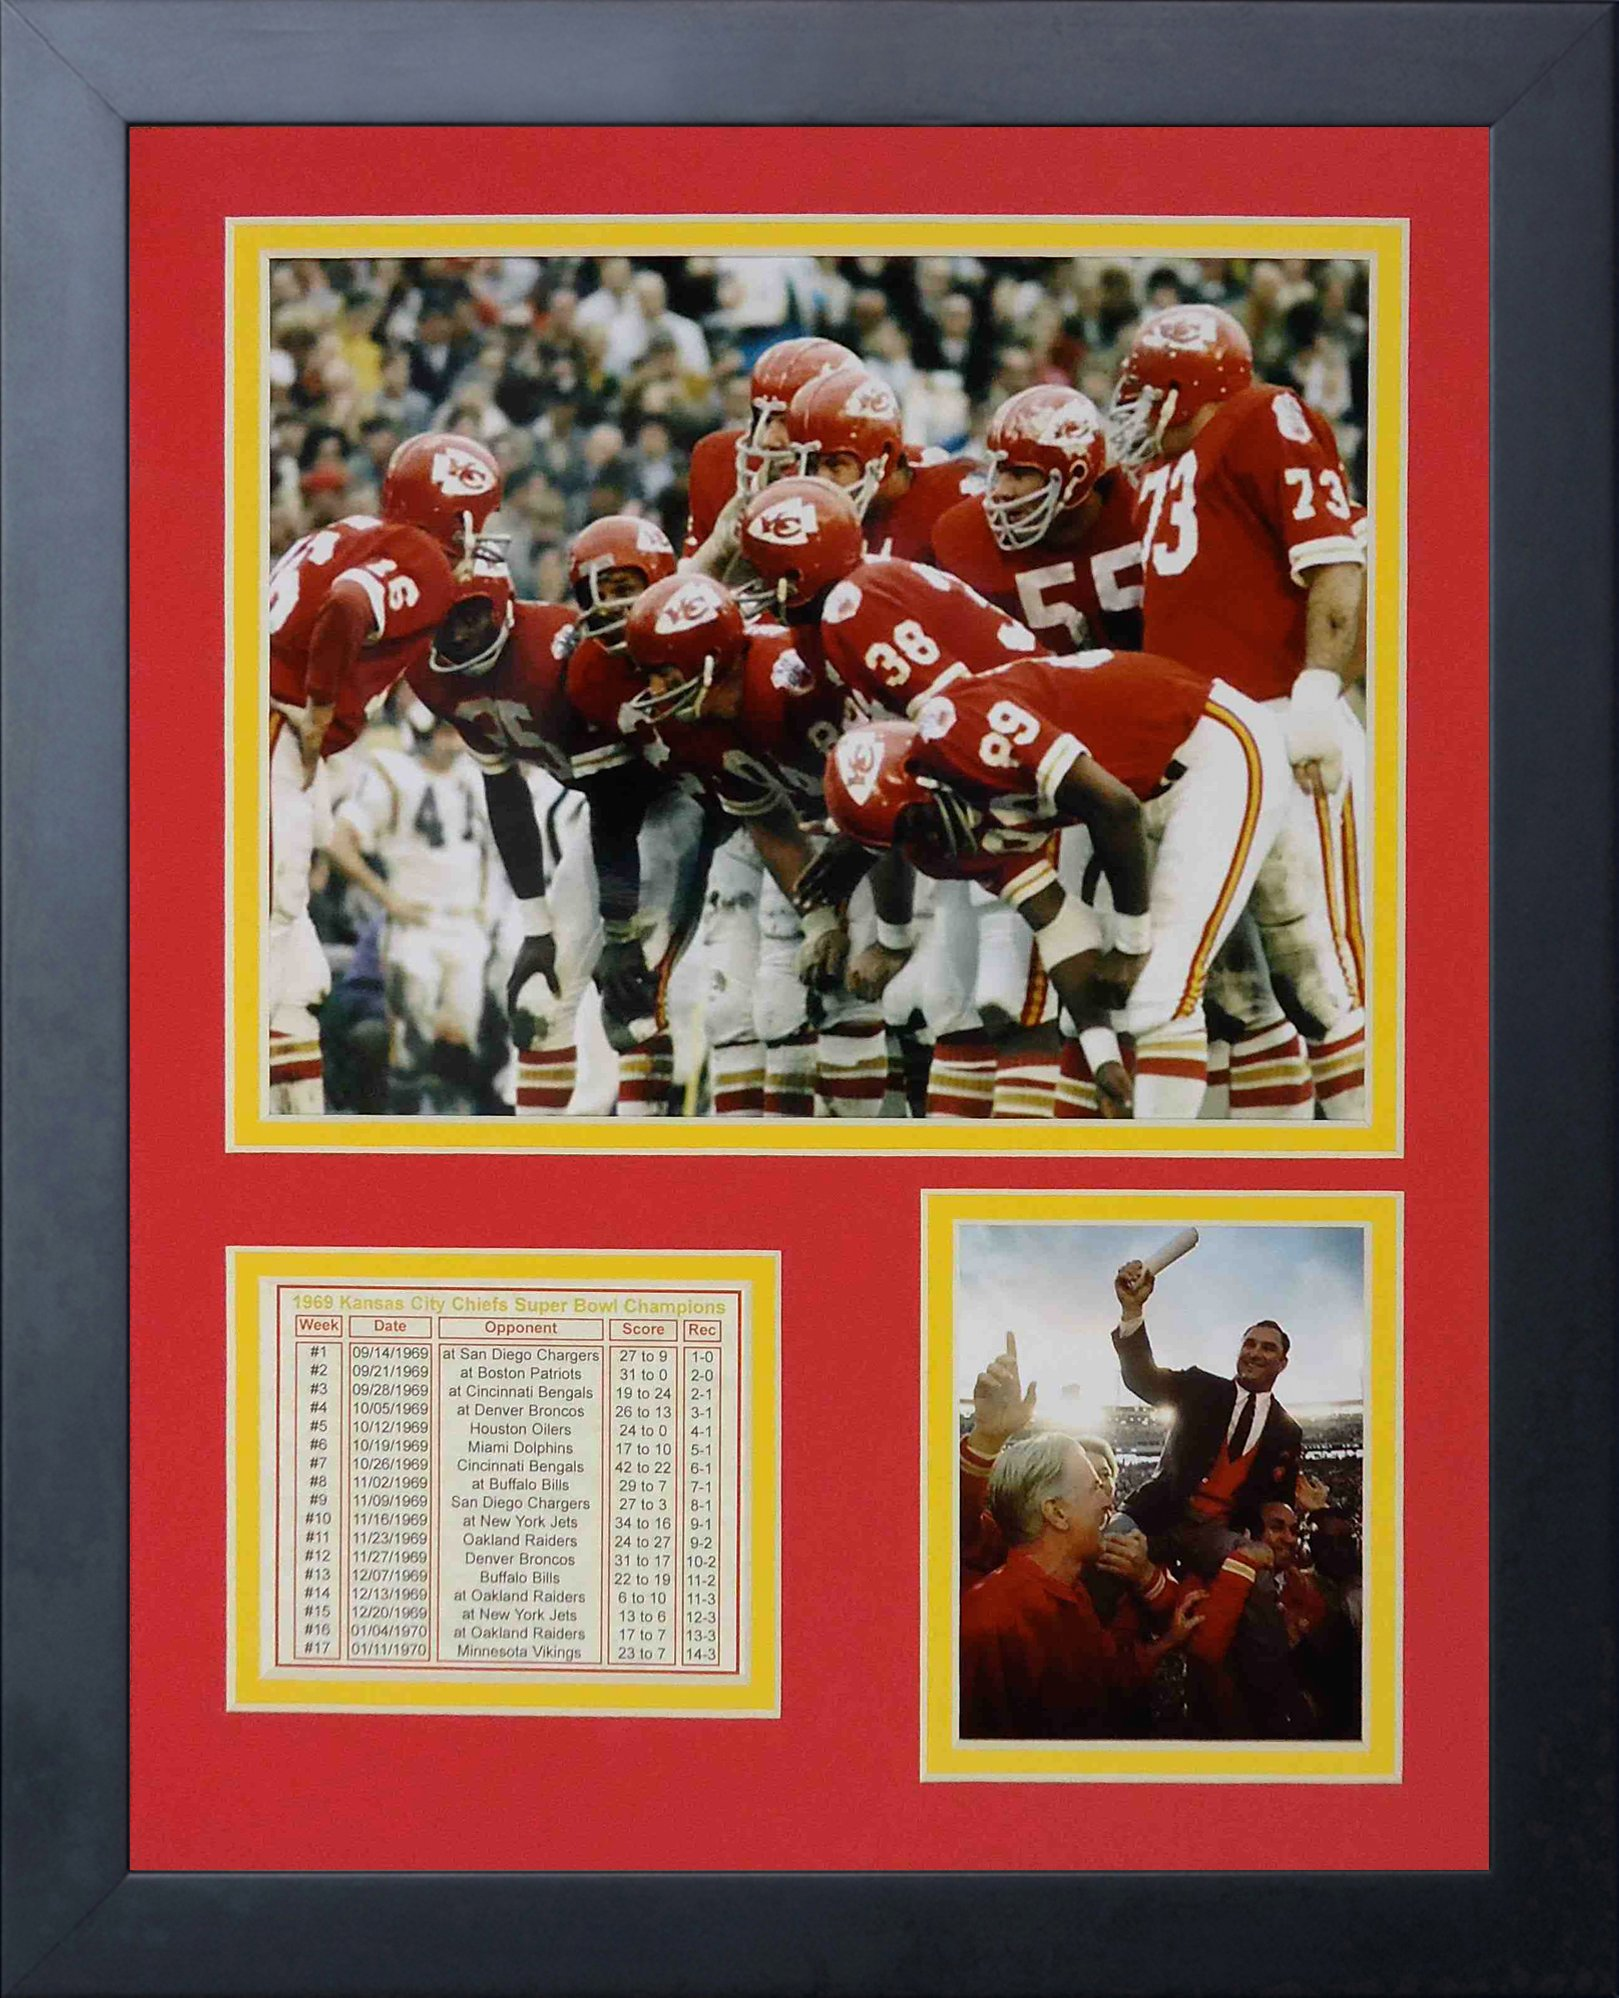 Legends Never Die 1969 Kansas City Chiefs Huddle Framed Photo Collage, 11 by 14-Inch